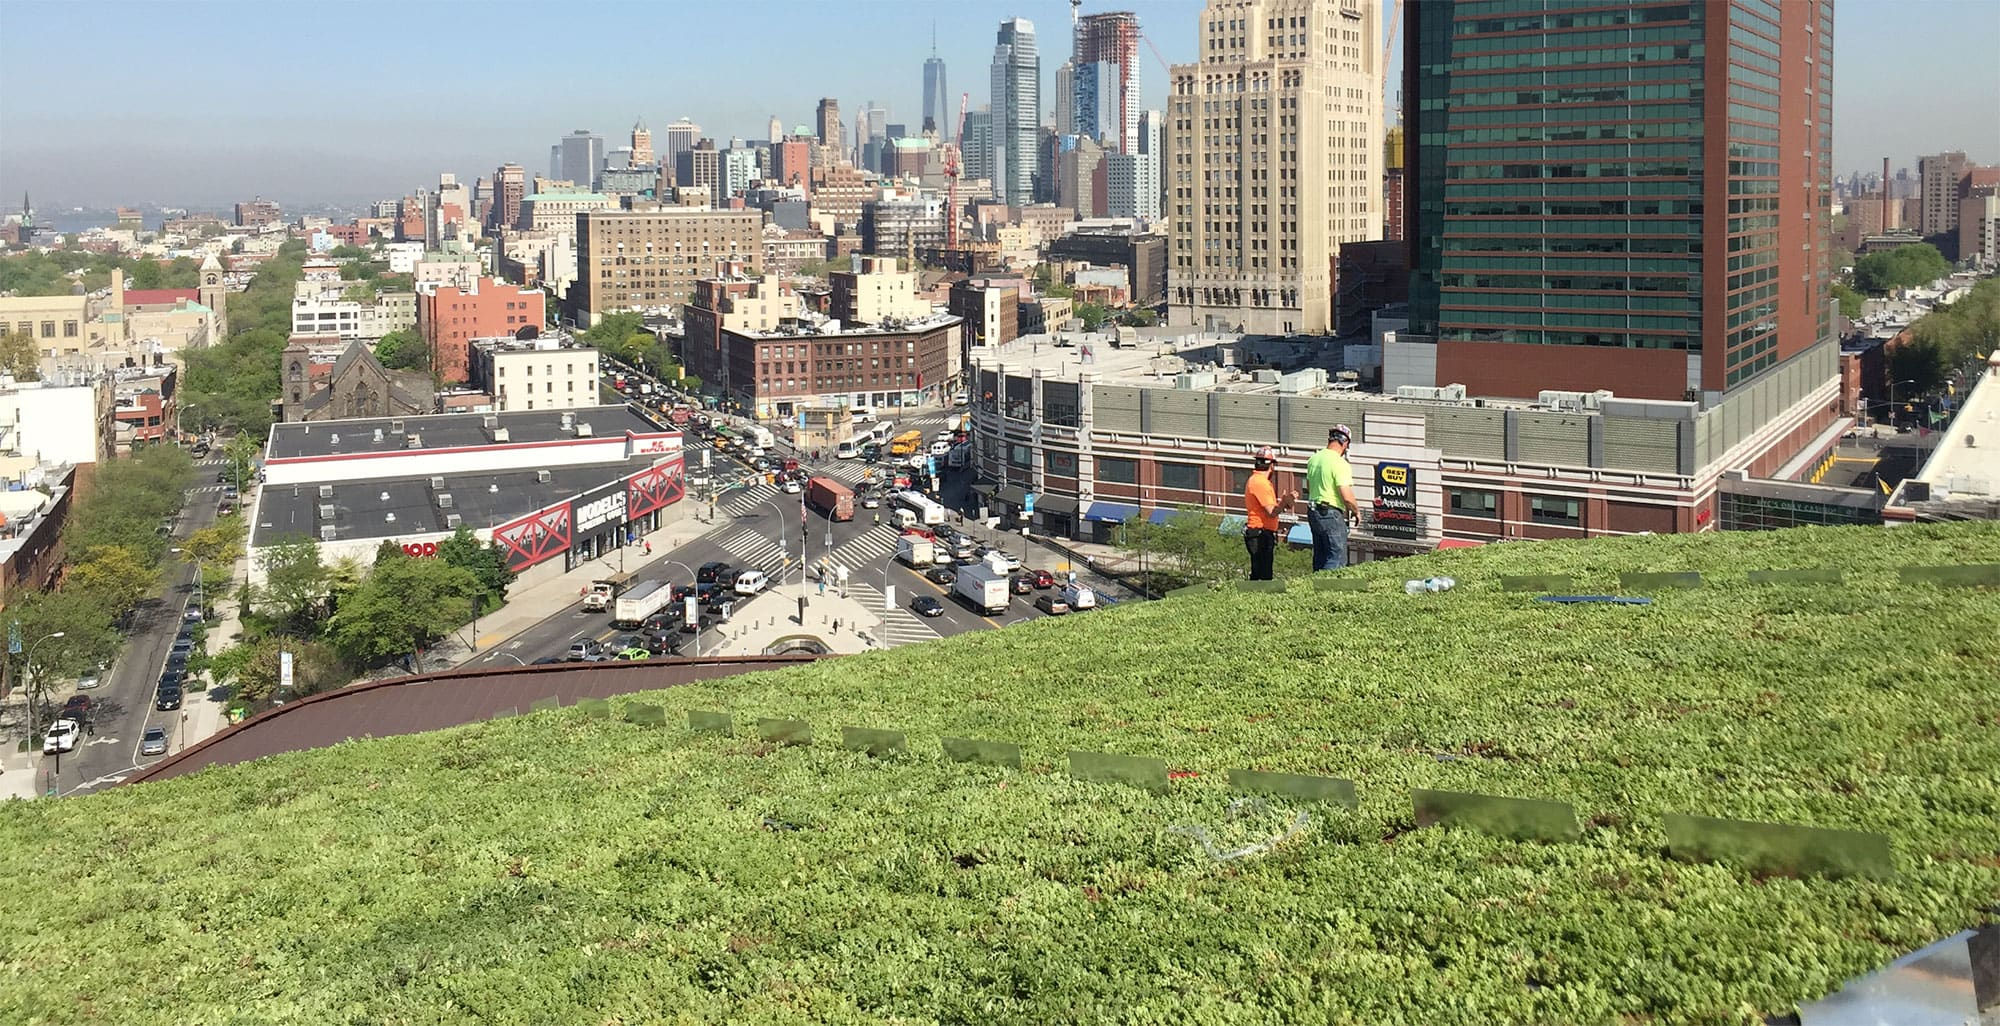 barclays center green roof